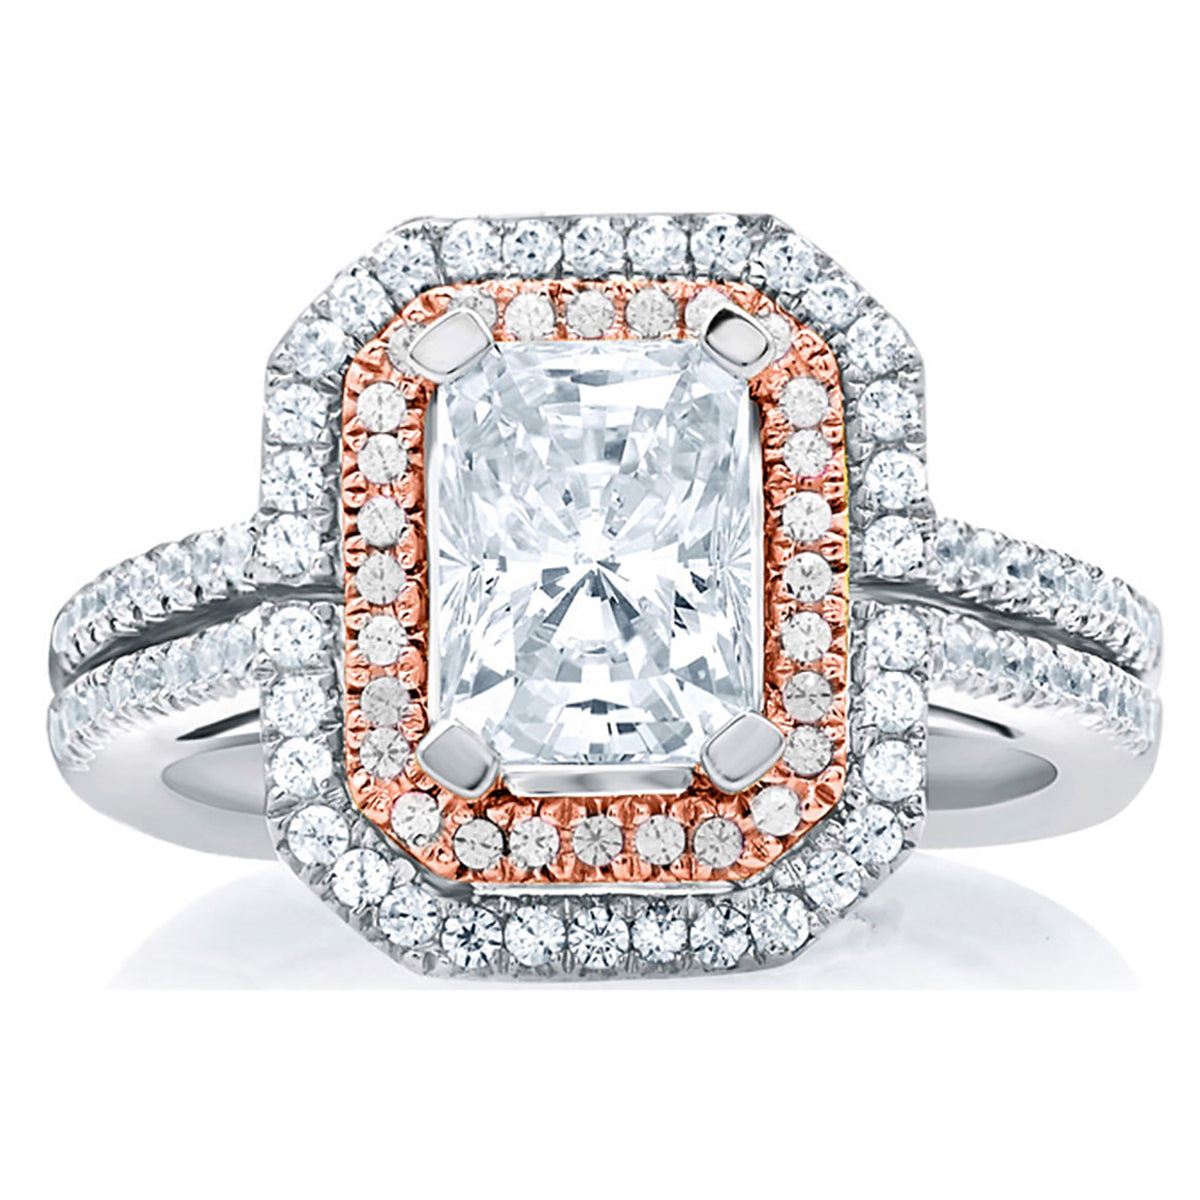 A.Jaffe Double Halo Emerald Cut Rose Gold Diamond Engagement Ring MES637/139